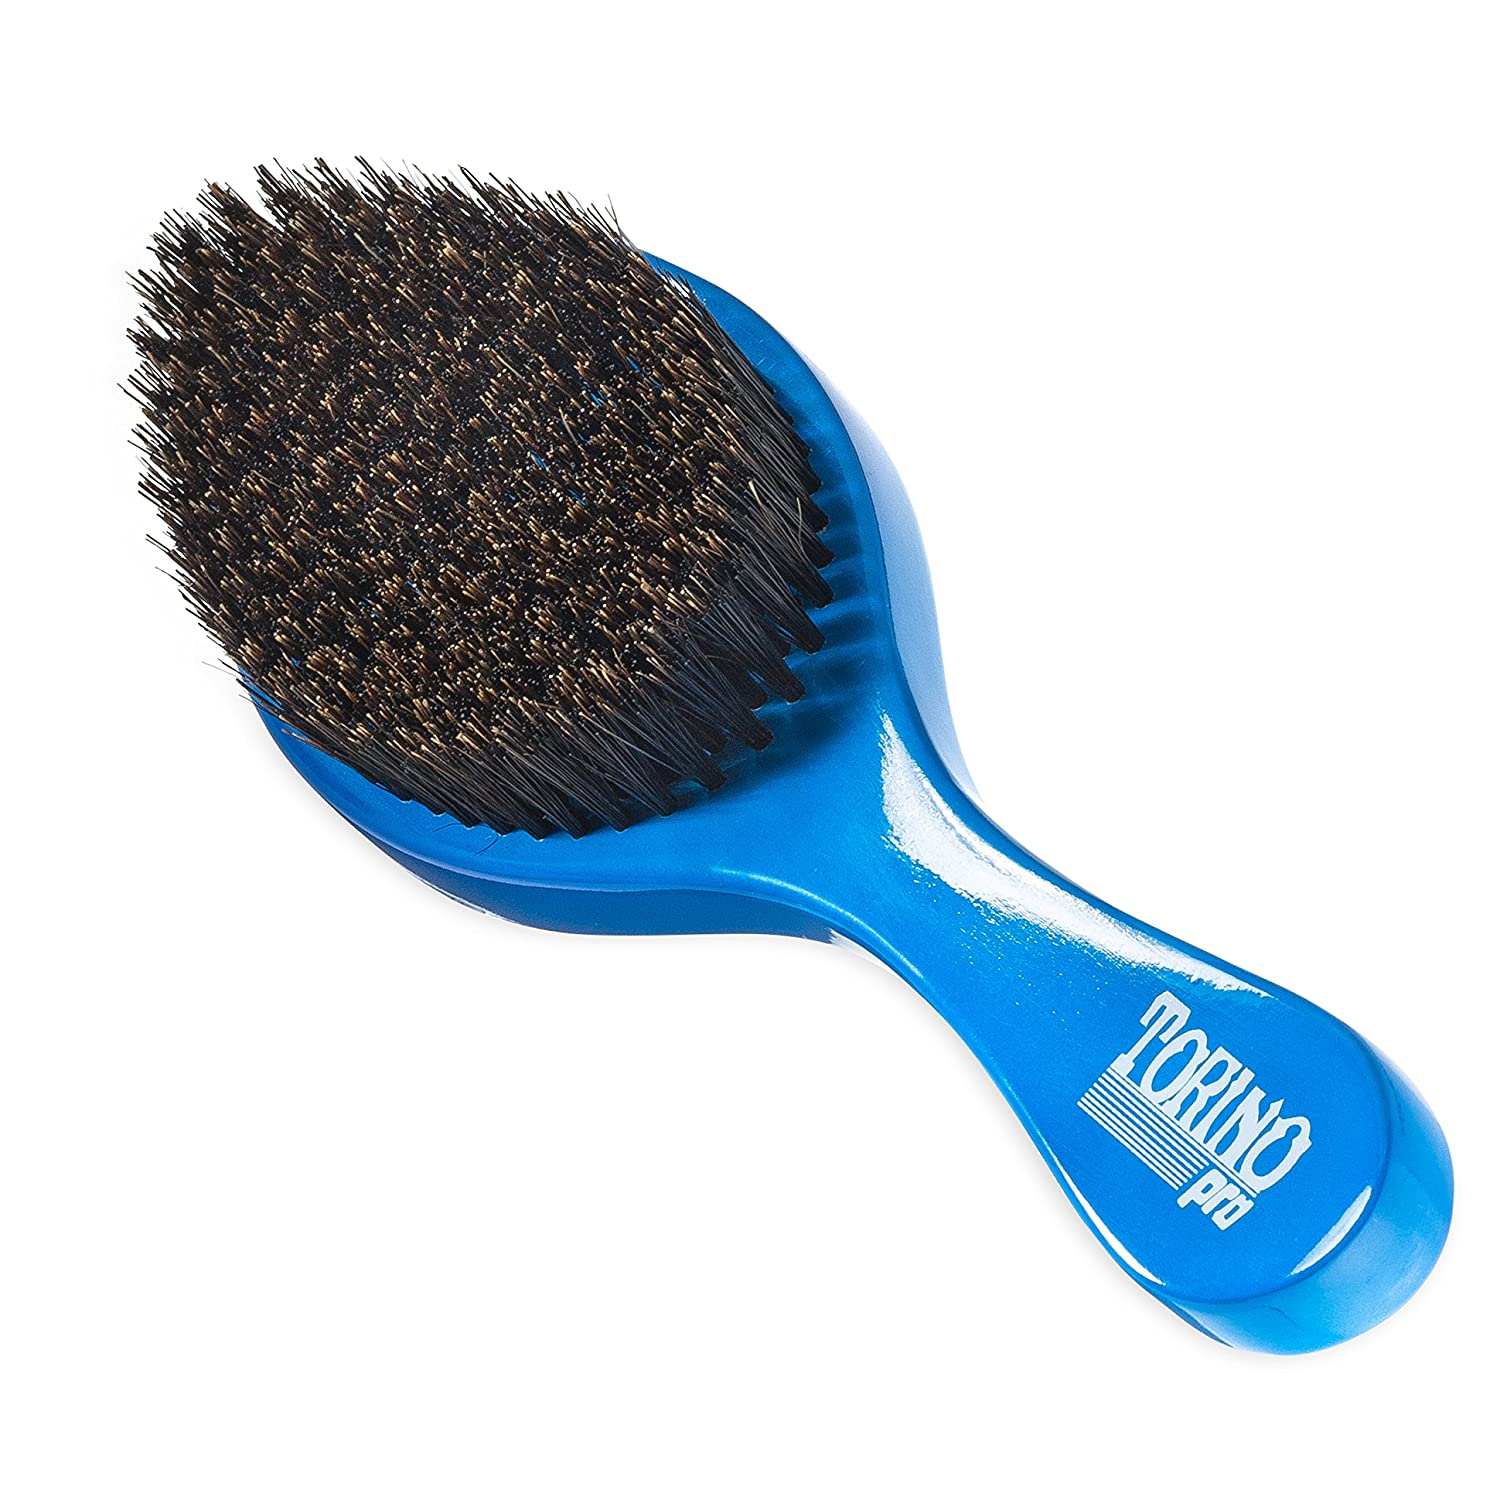 Torino Pro Wave Best Brushes For Hair